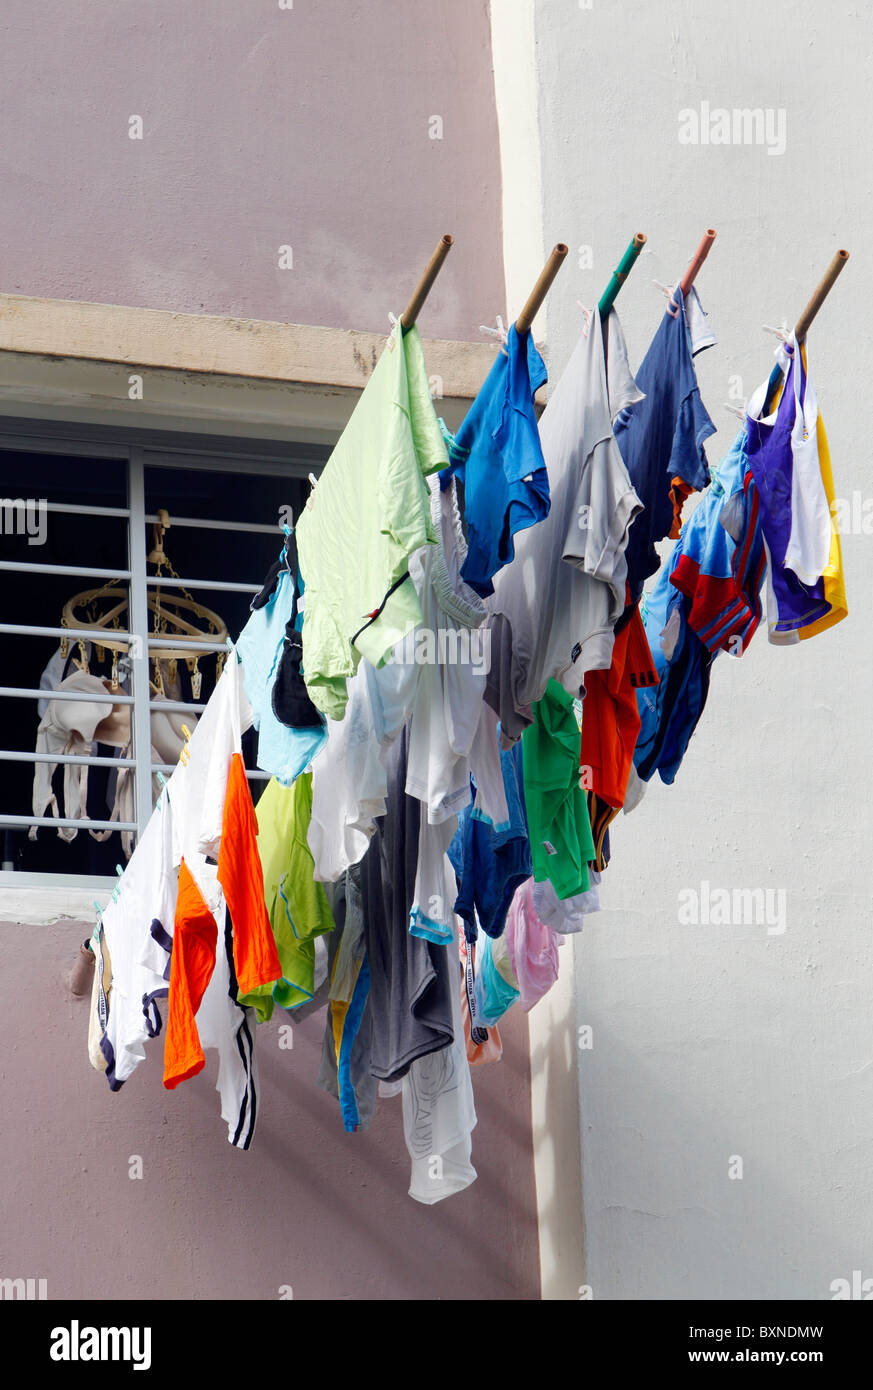 Singapore, the washing is hung out of the window to dry on a stick - Stock Image